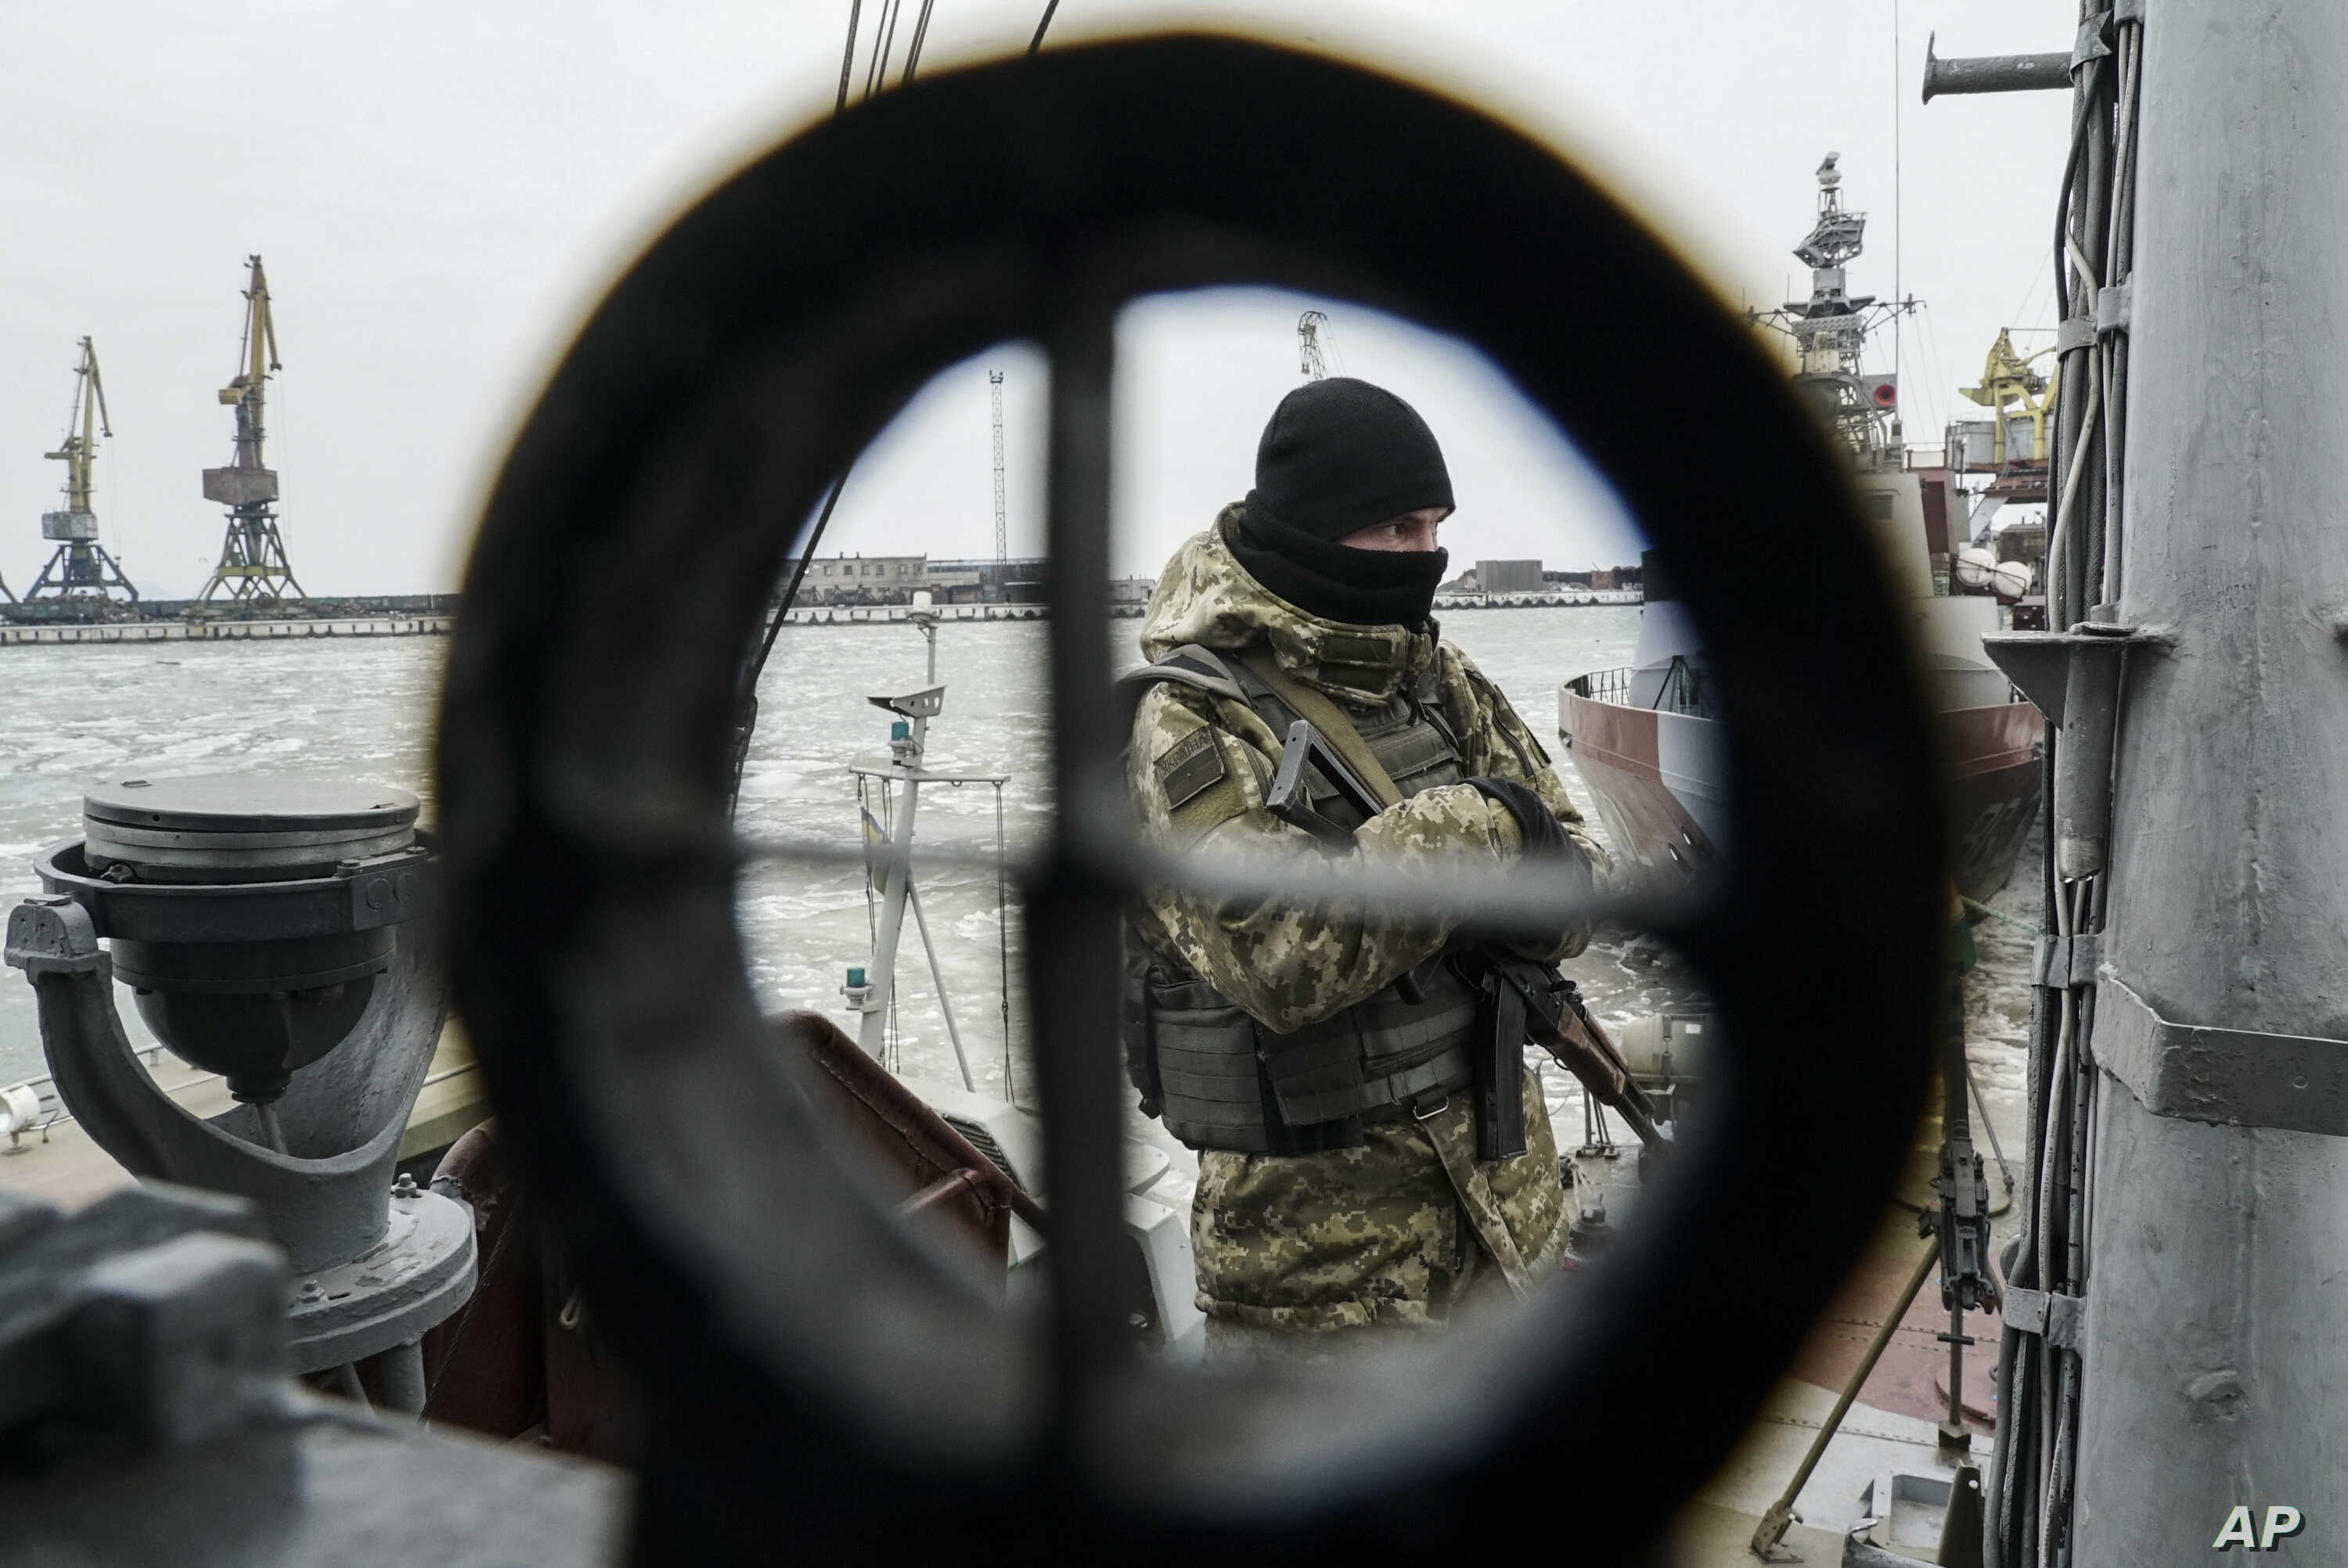 FILE - A Ukrainian serviceman stands on board a coast guard ship in the Sea of Azov port of Mariupol, eastern Ukraine, Dec. 3, 2018.